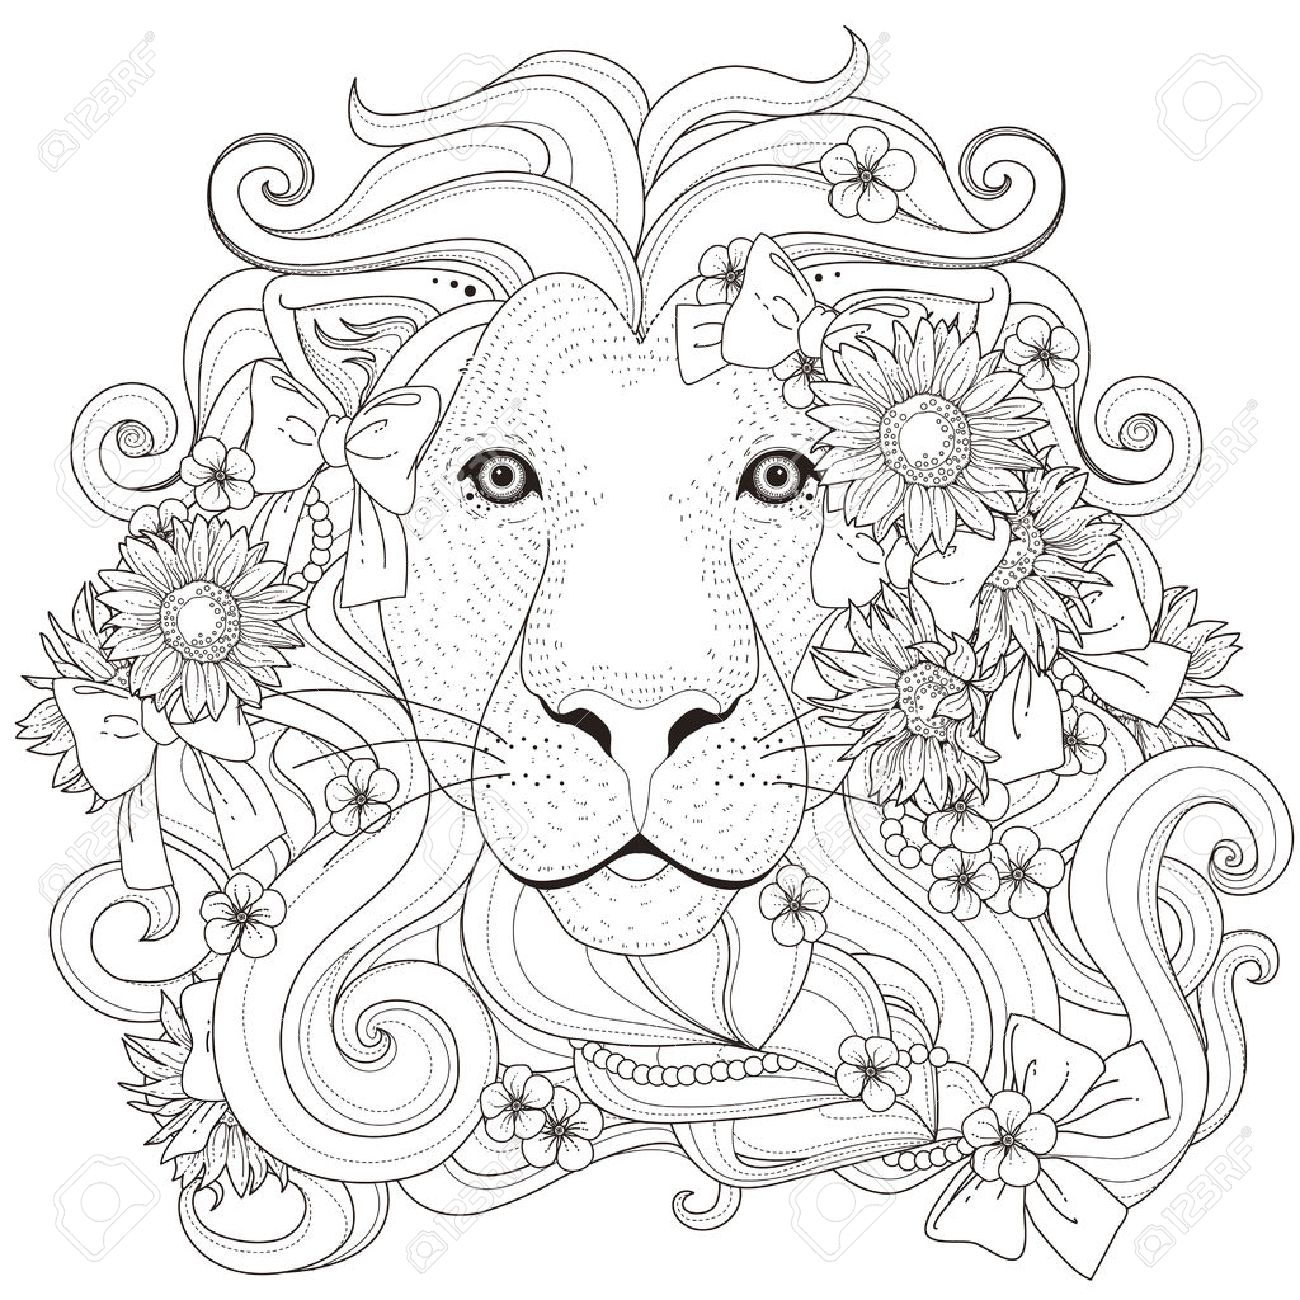 Lovely Lion With Flowers Coloring Page In Exquisite Style Stock Vector